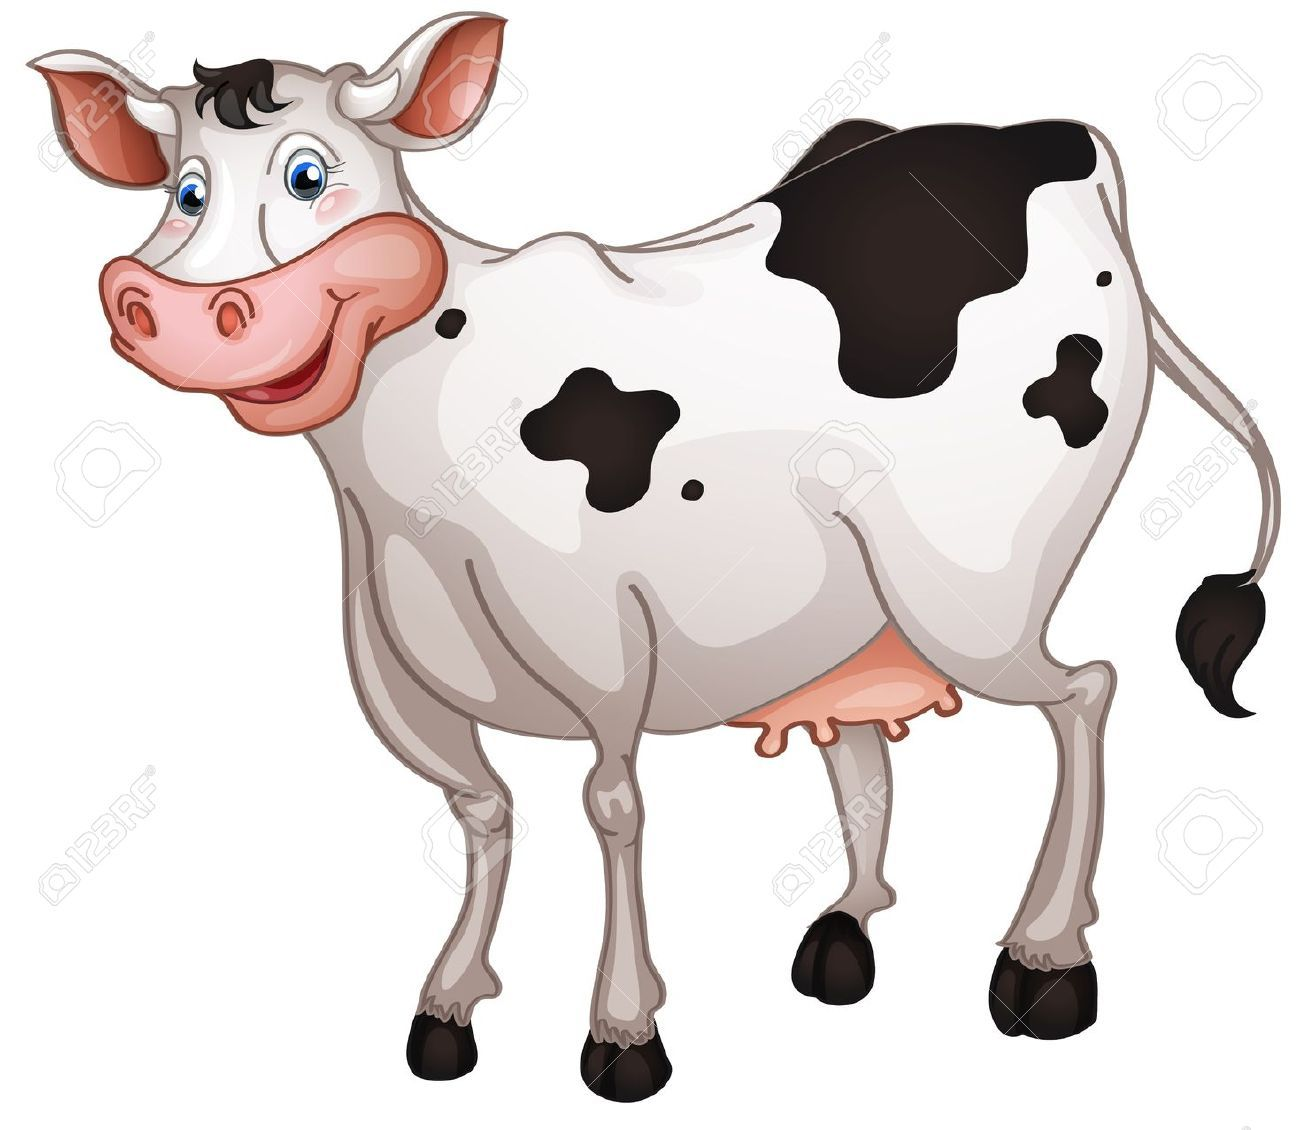 Cow easy. Clipart clip art drawing